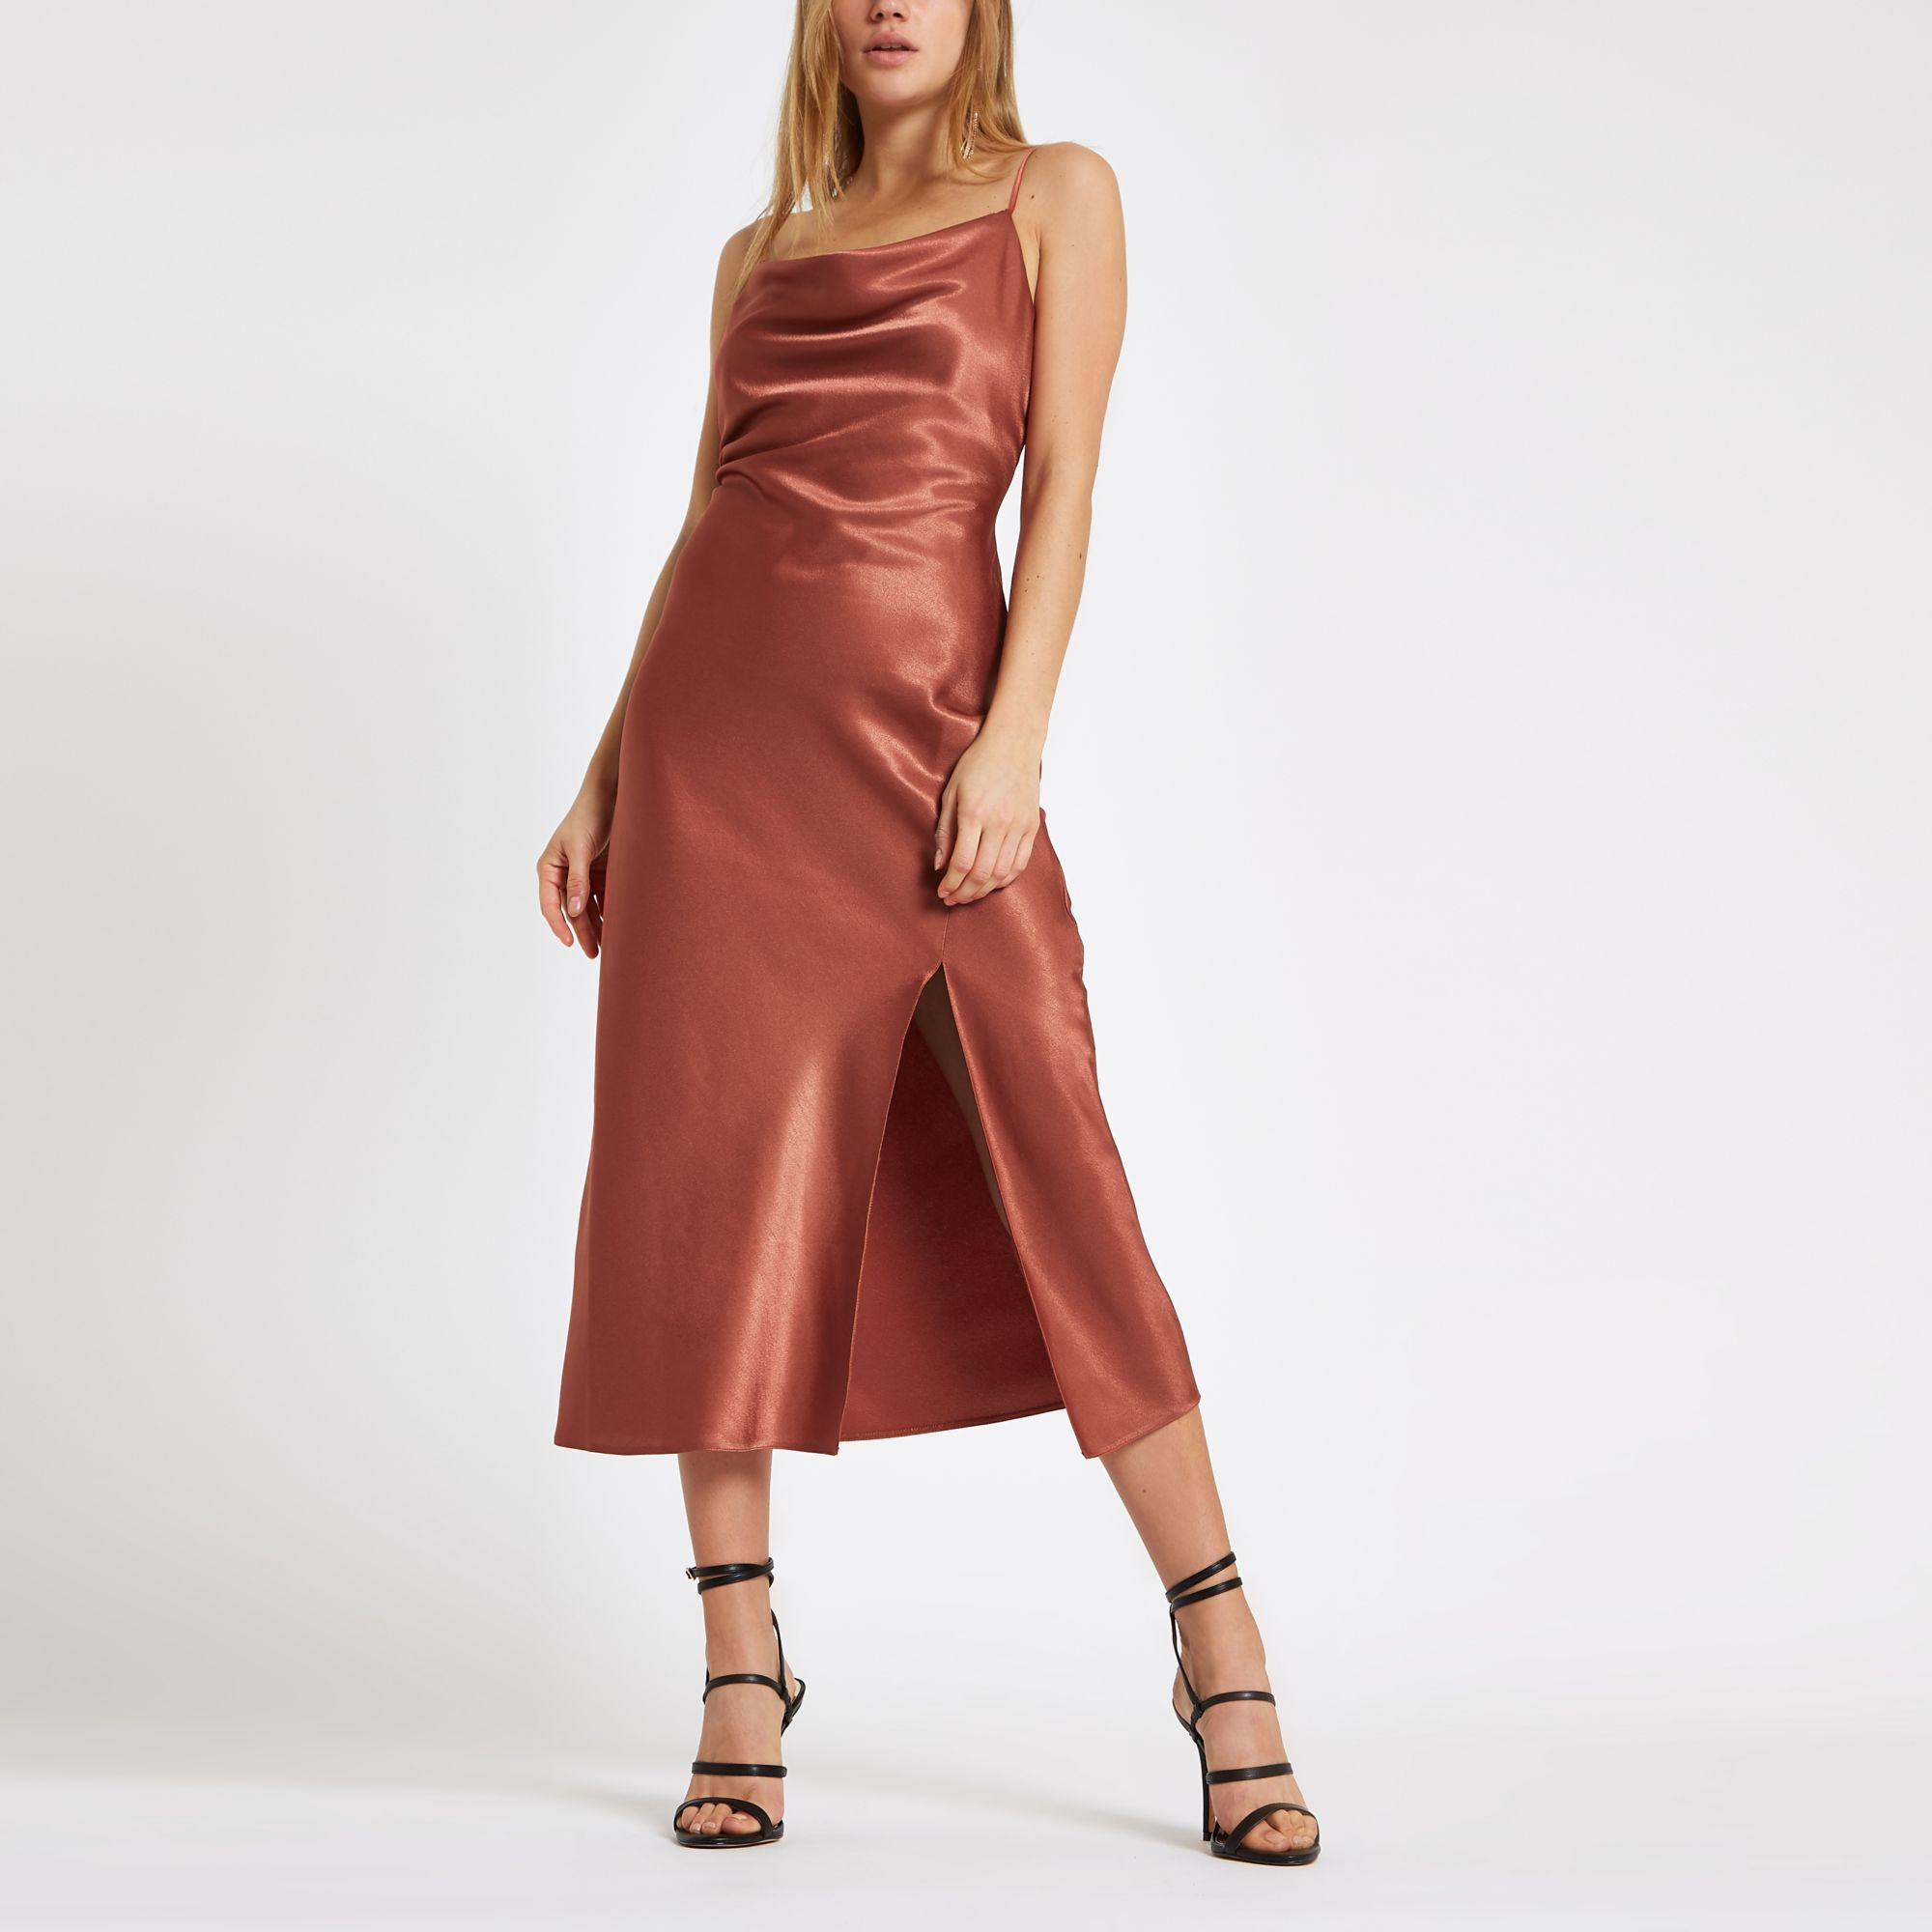 Cowl Neck Satin Wedding Dresses: River Island Rust Satin Lace Cowl Neck Maxi Dress In Brown